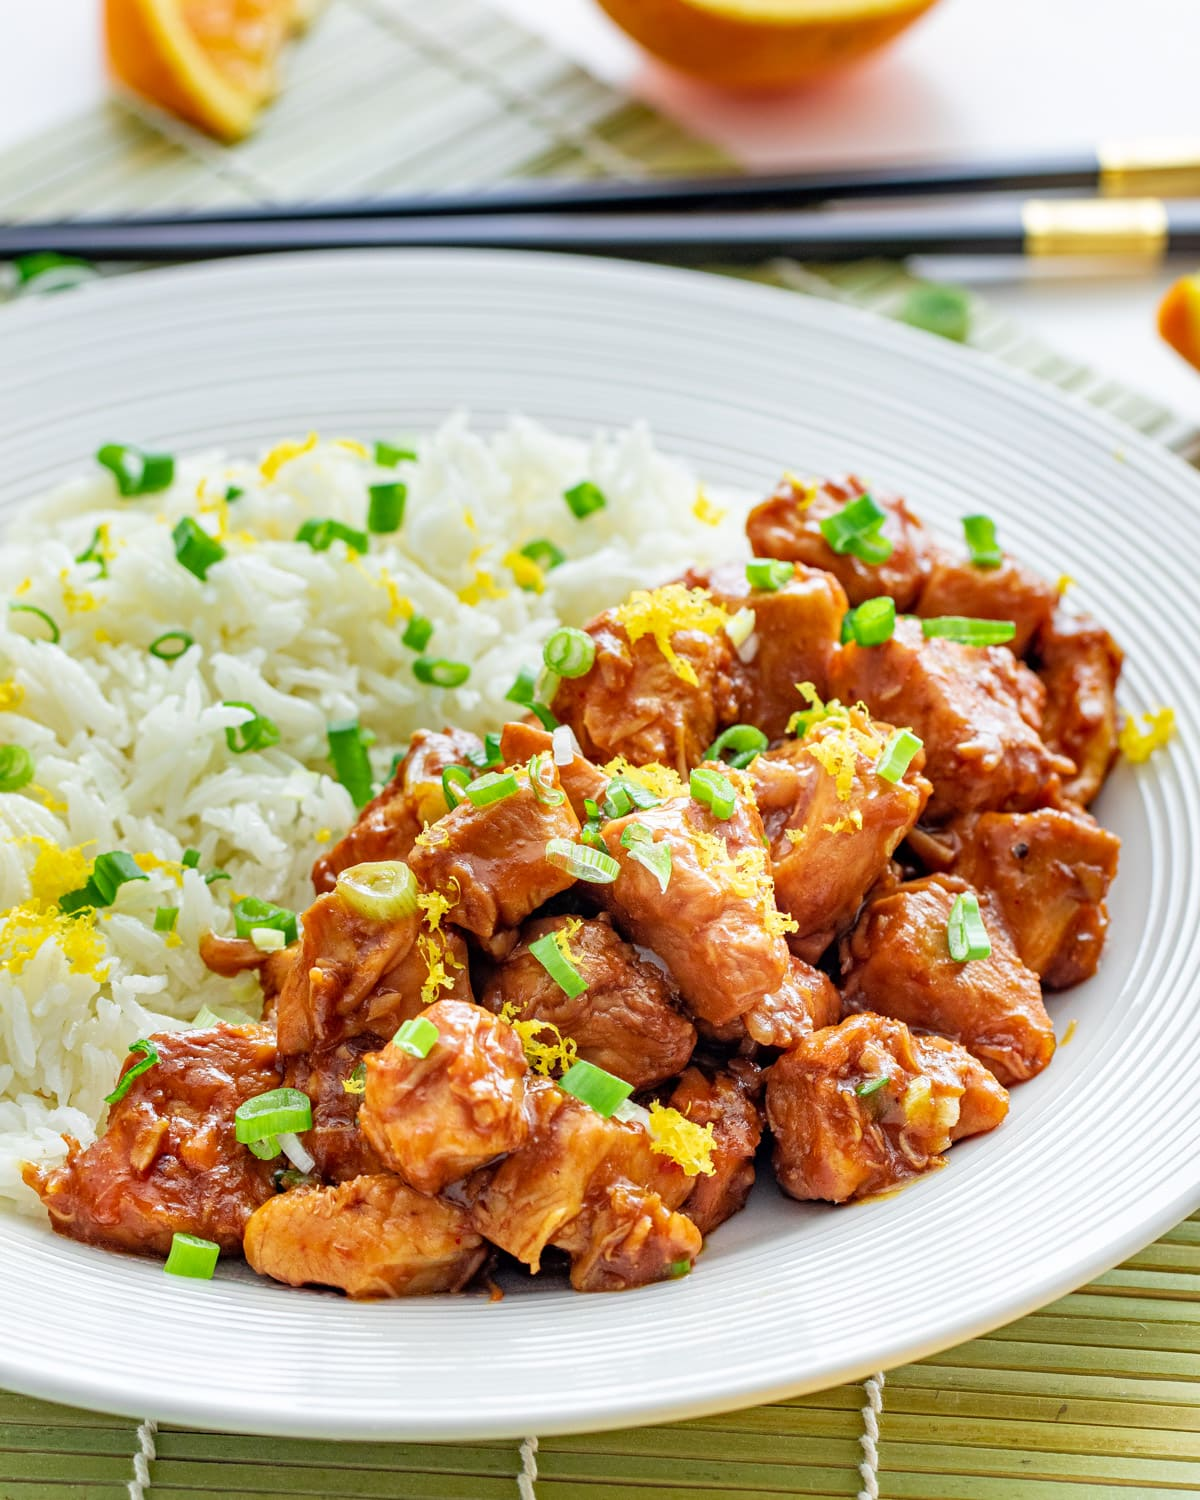 Instant Pot Orange Chicken Craving Home Cooked